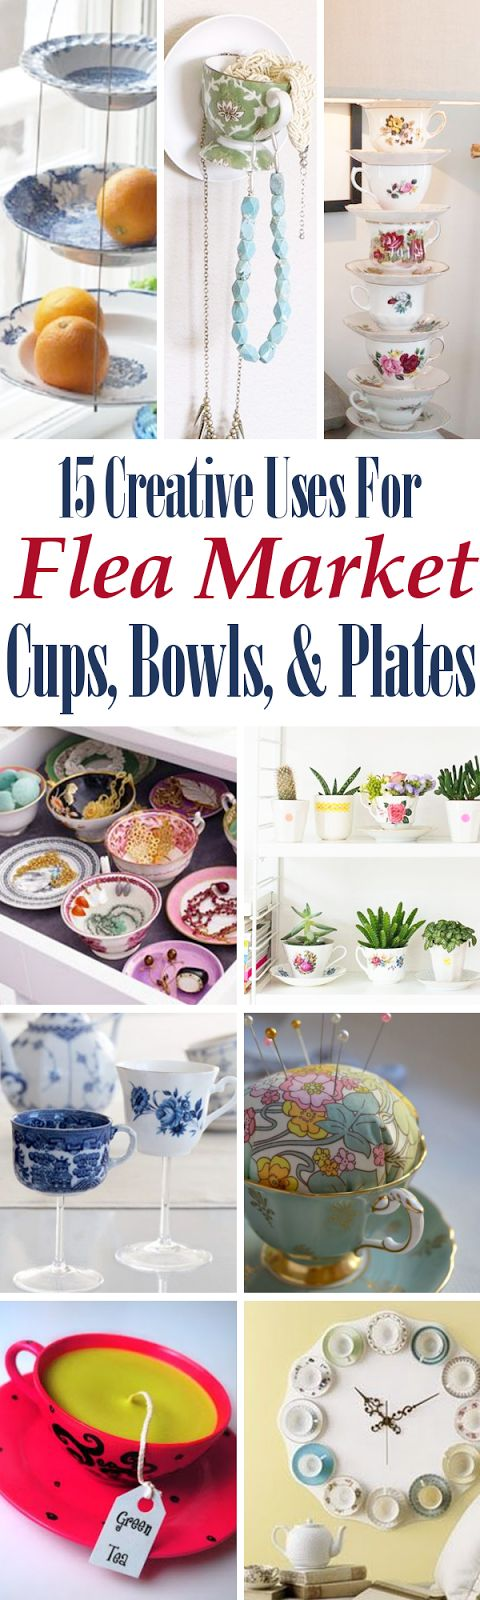 15 Creative Uses For Flea Market Cups, Bowls, & Plates